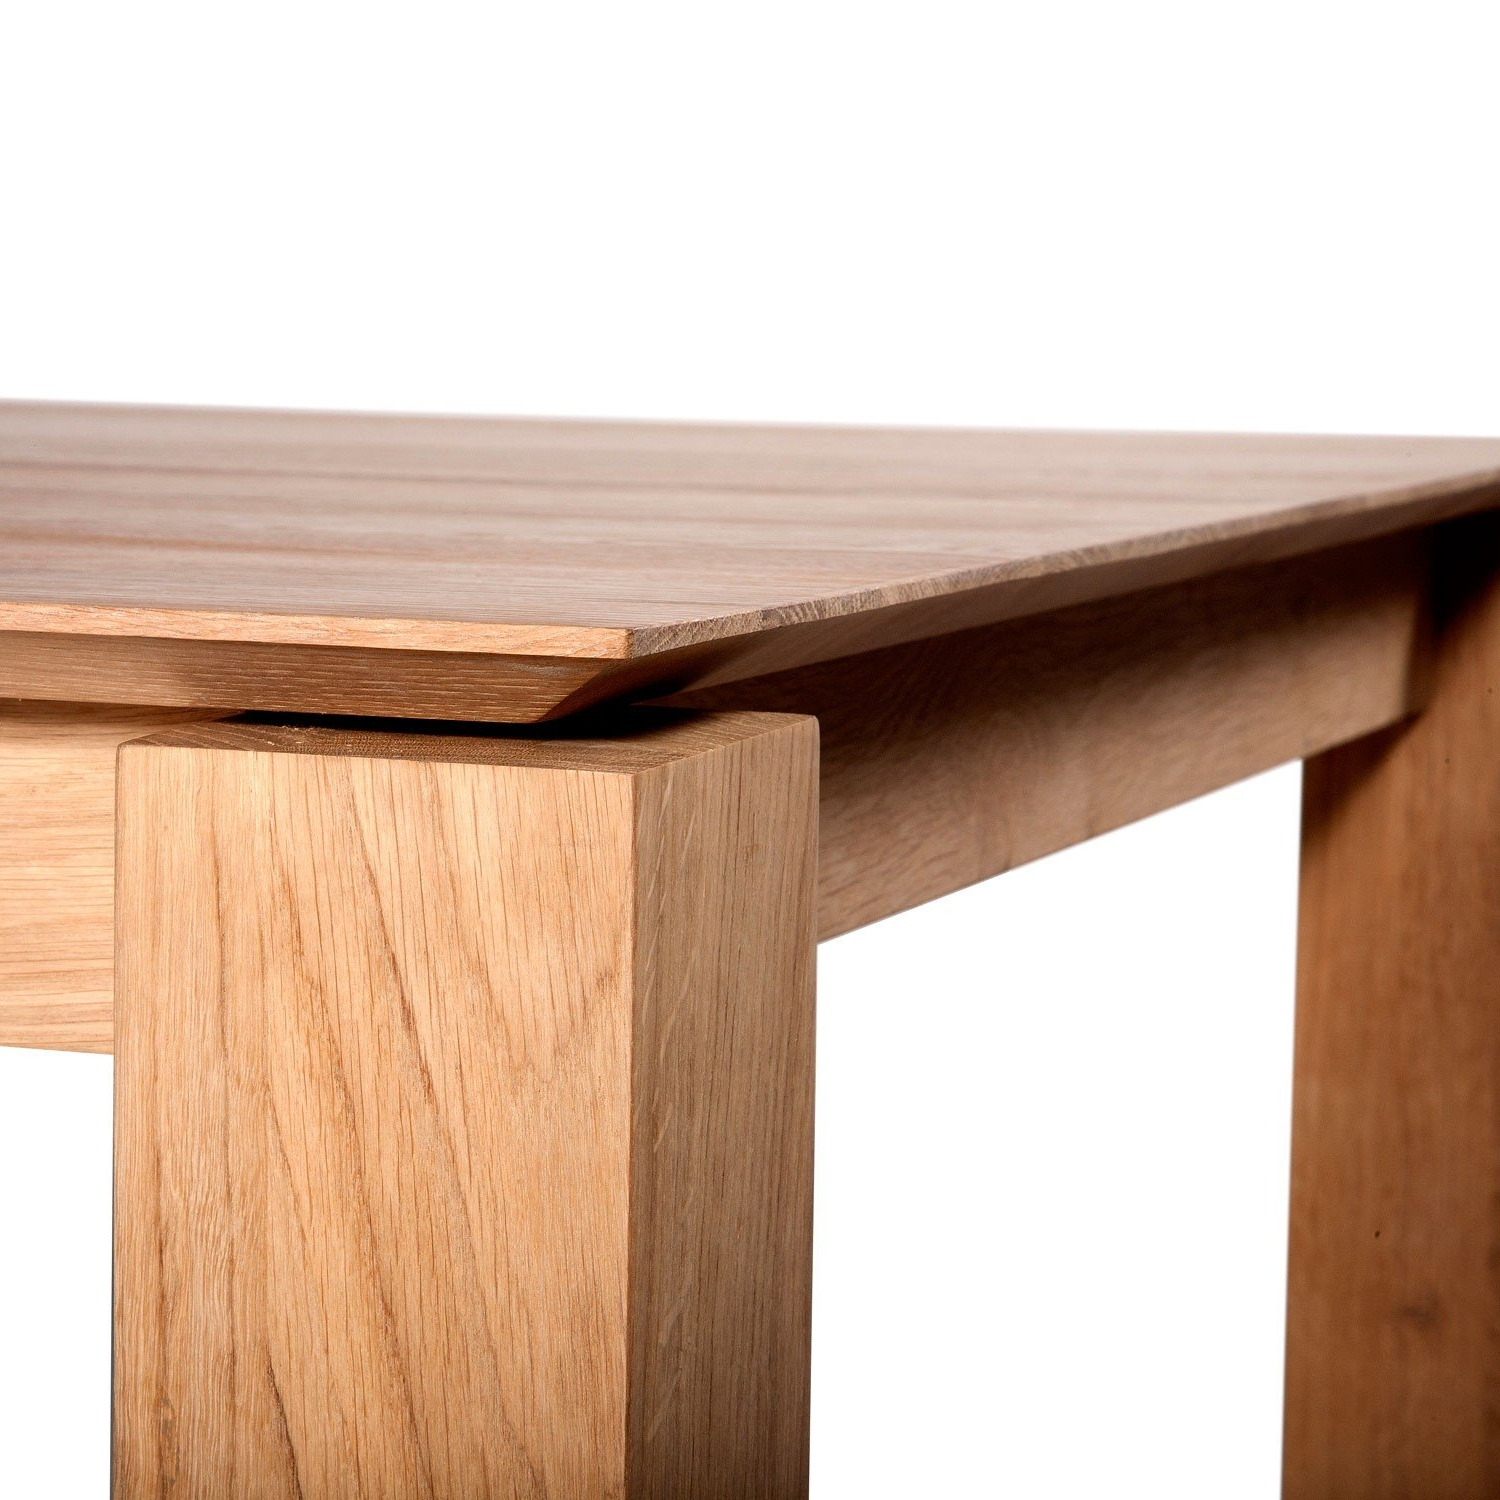 Extending Dining Sets With Regard To Most Up To Date Ethnicraft Oak Slice Extending Dining Tables (View 5 of 25)